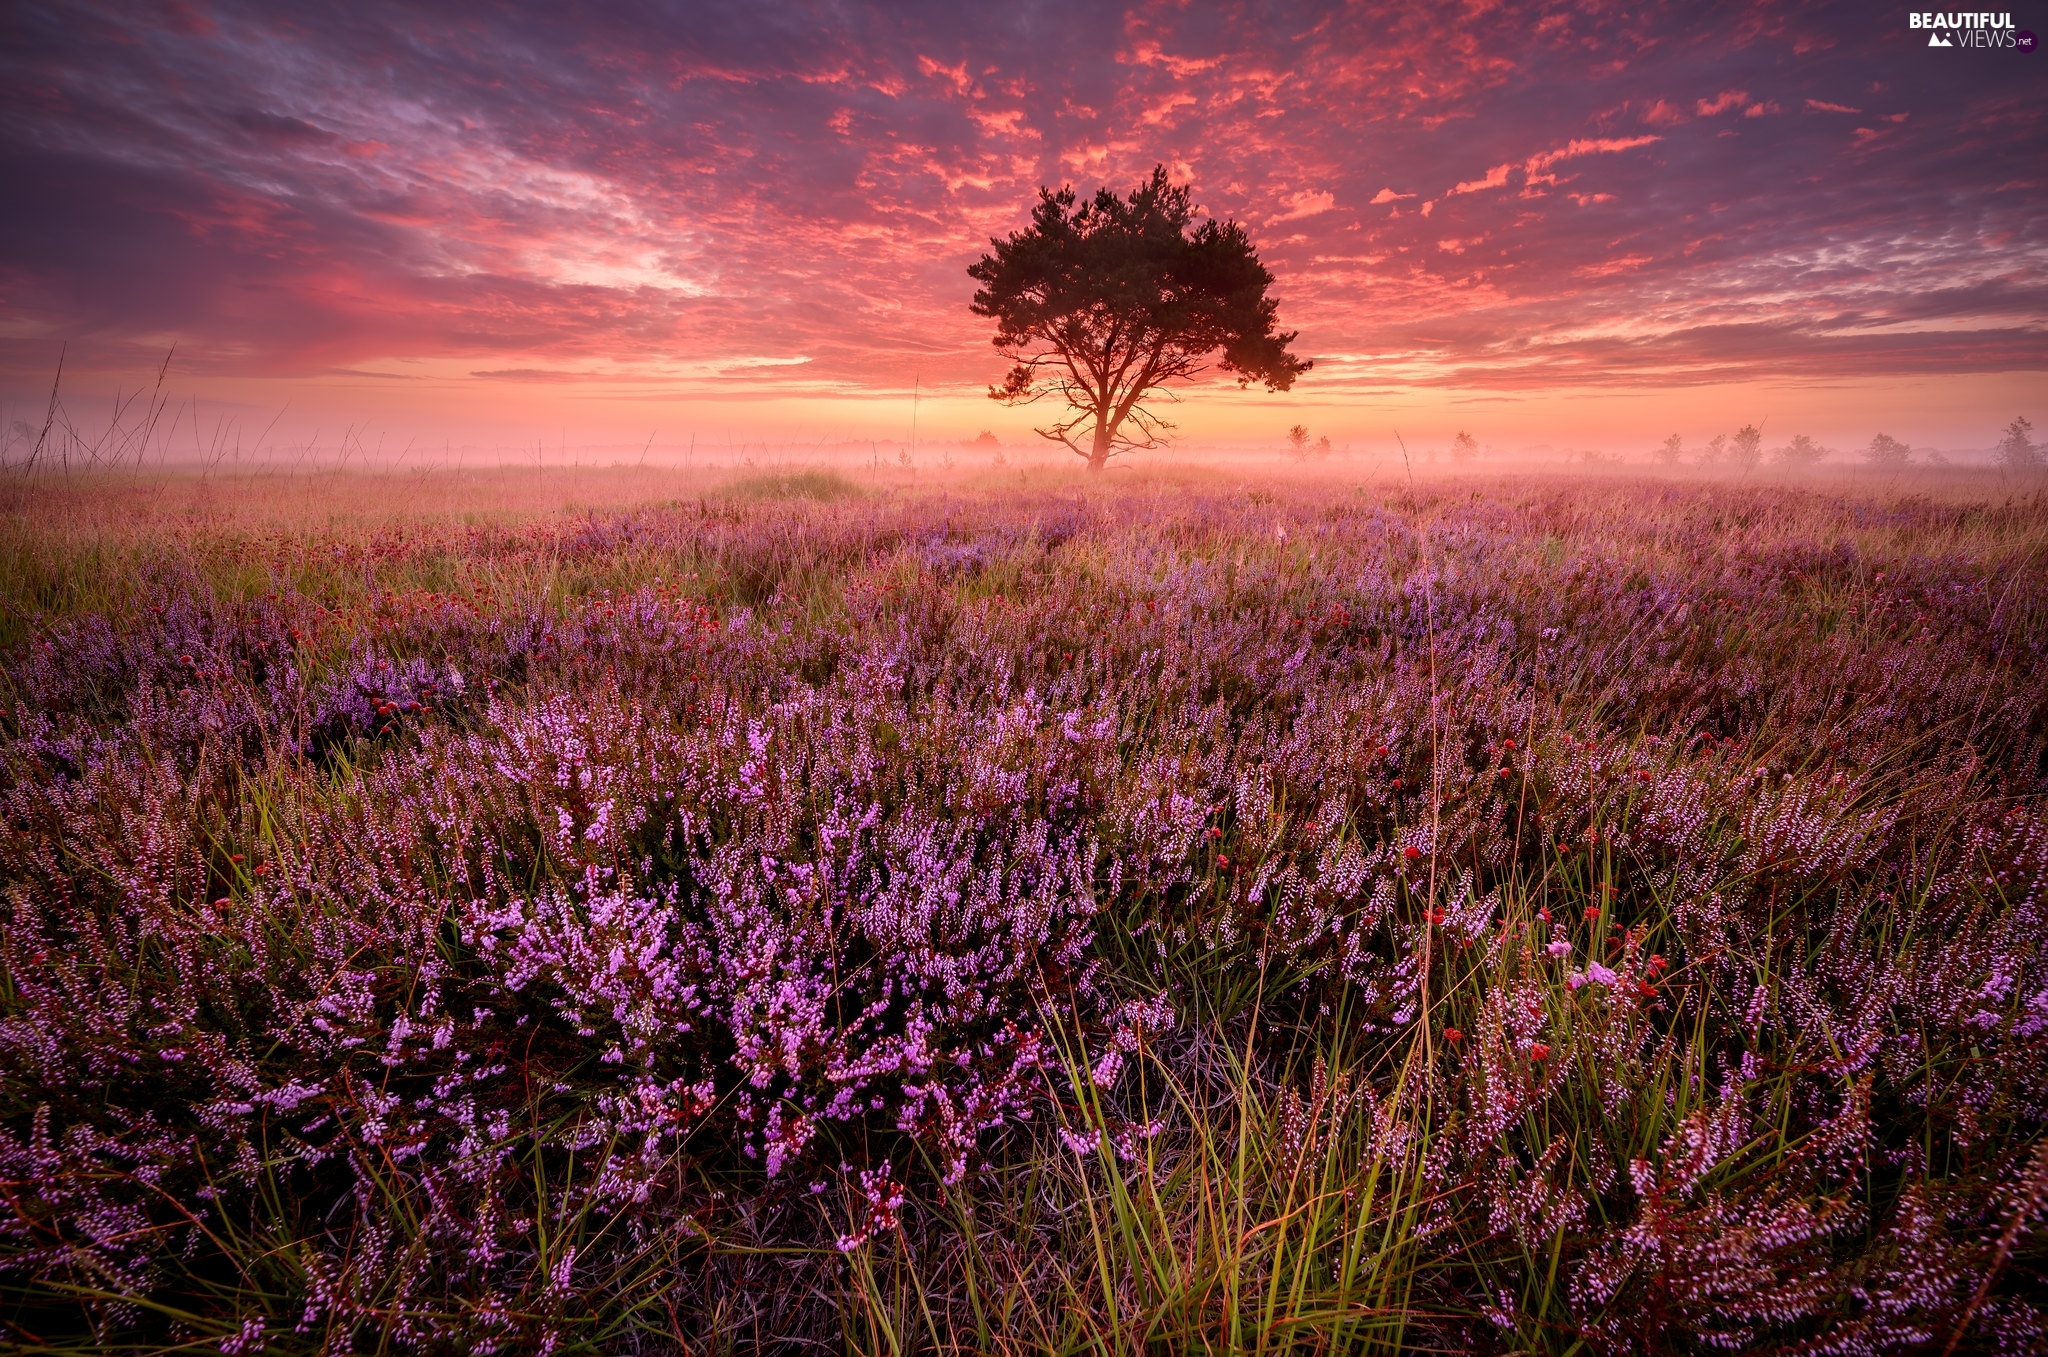 trees, heathers, Great Sunsets, clouds, Fog, heath